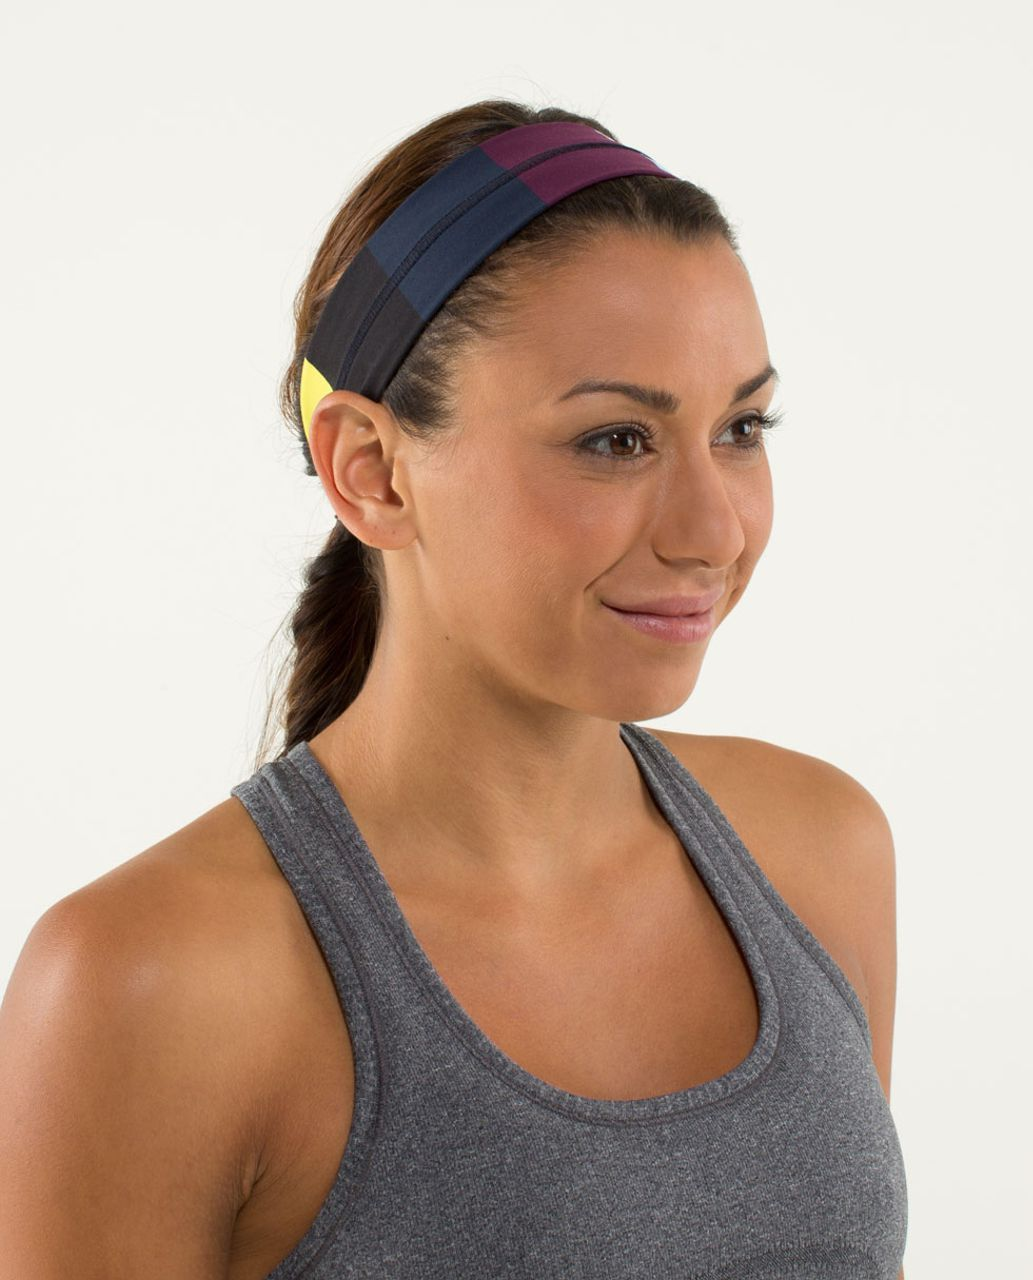 Lululemon Fly Away Tamer Headband - Pow Stripe Split Pea